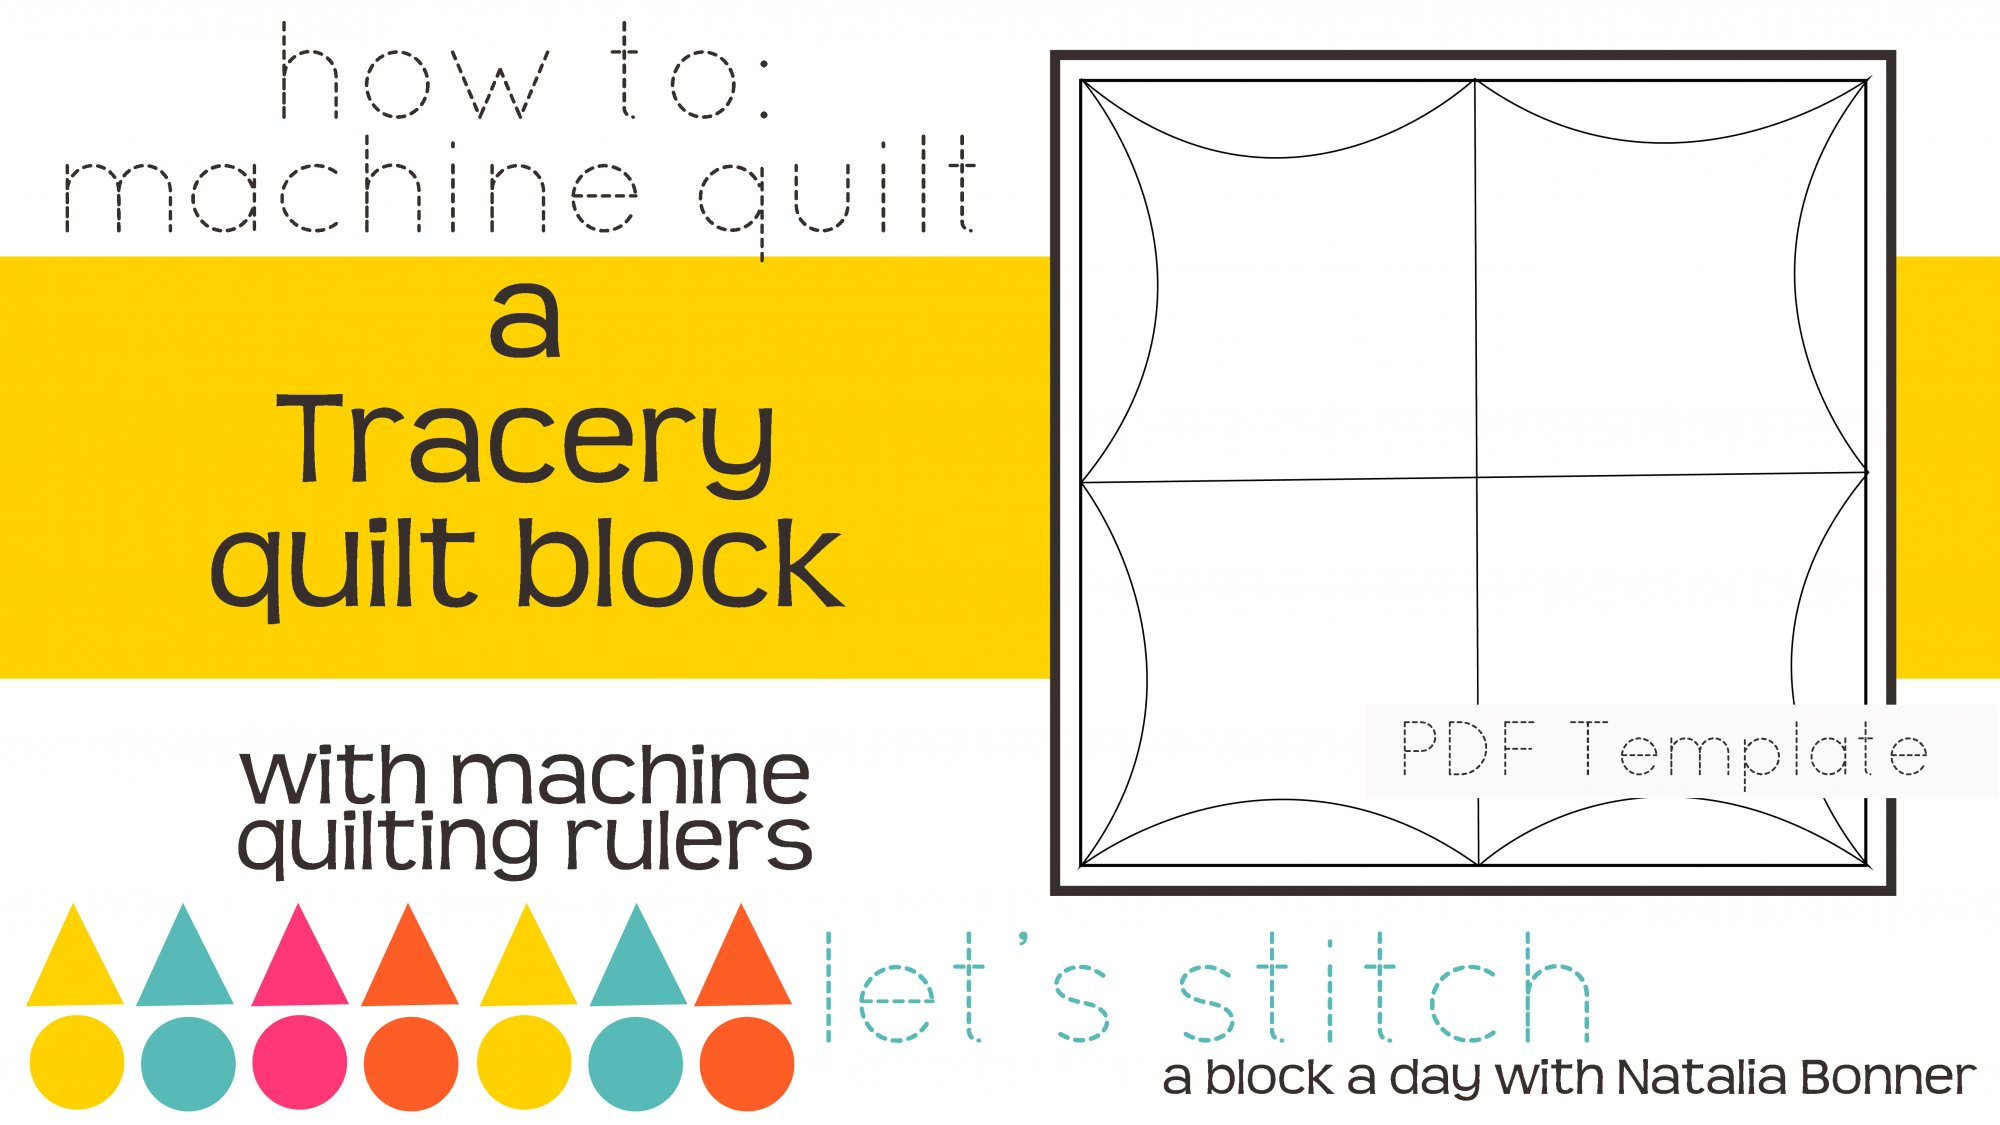 Let's Stitch - A Block a Day With Natalia Bonner - PDF - Tracery